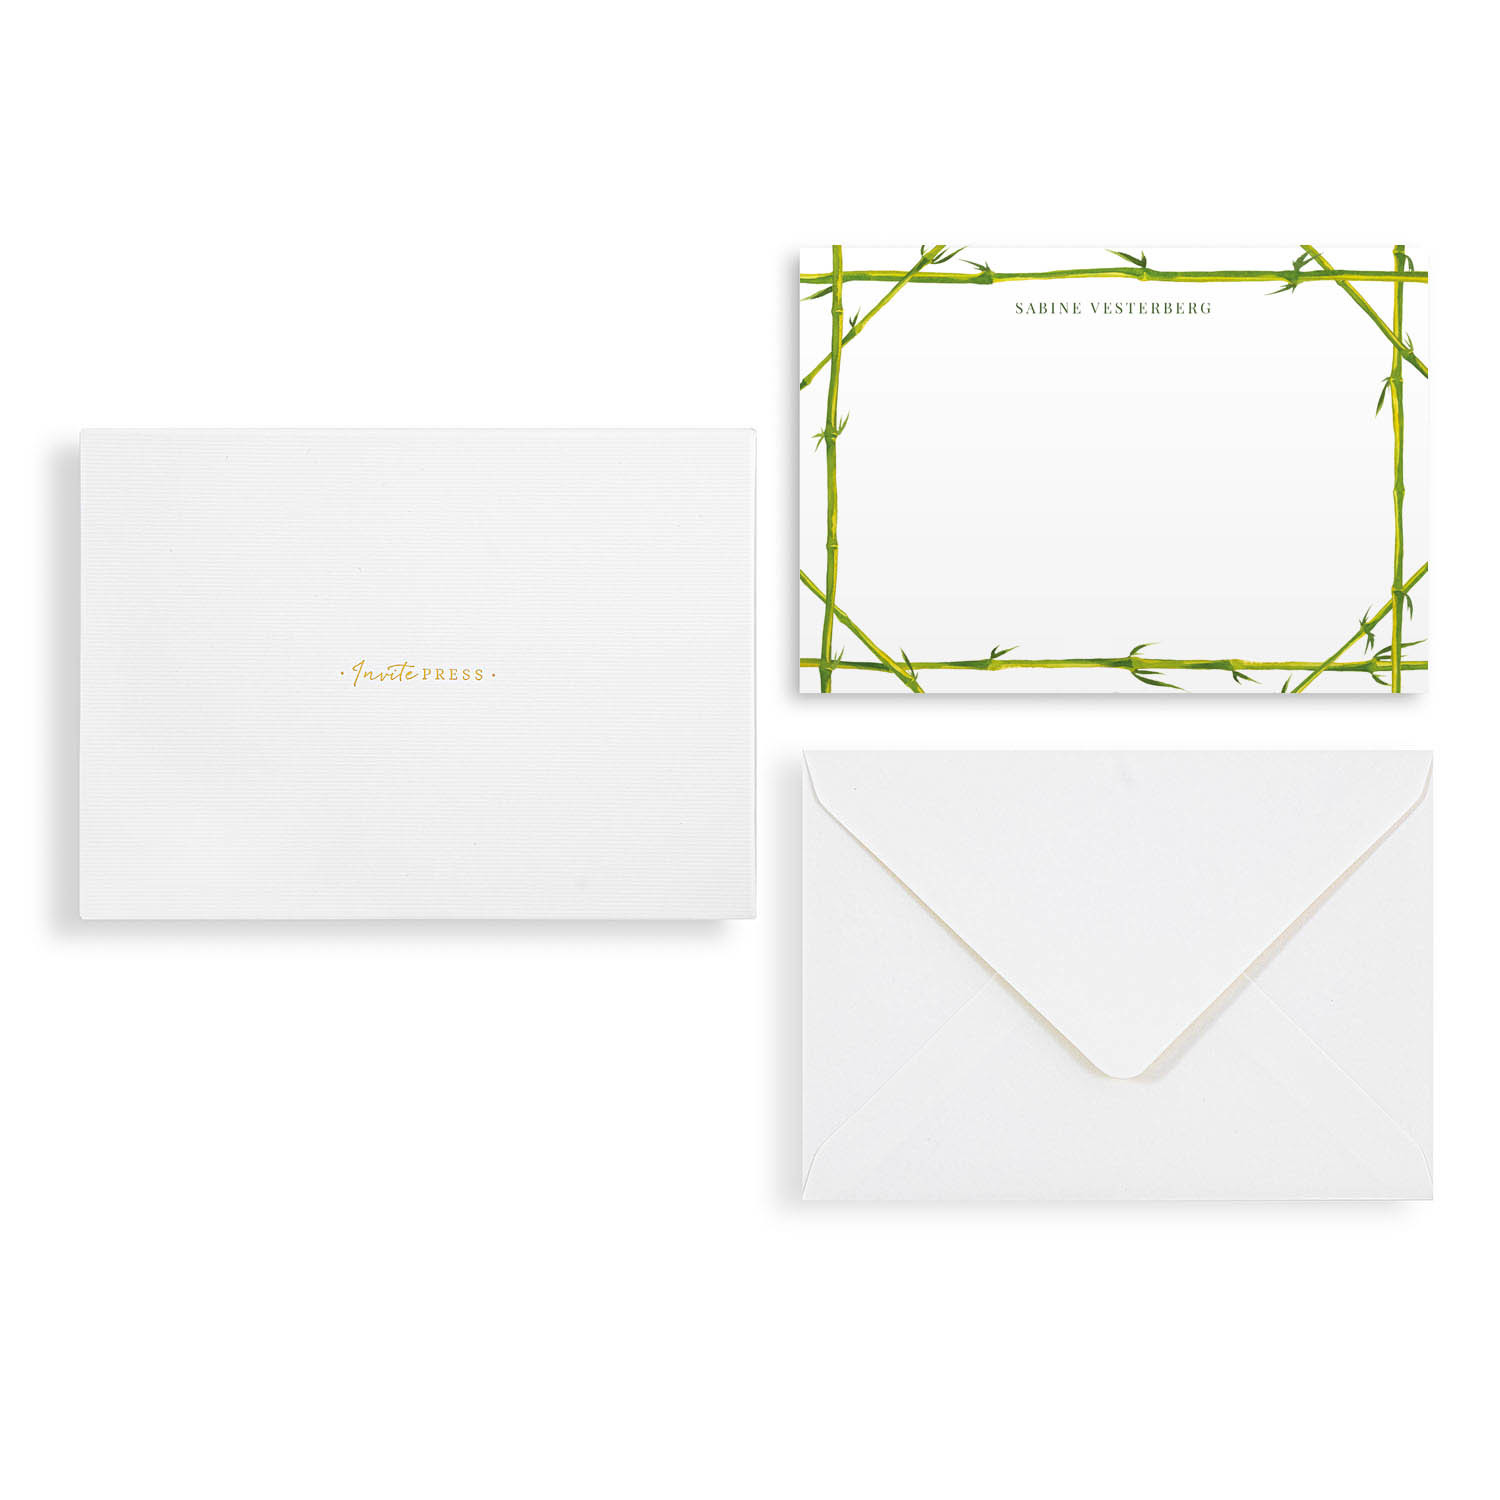 Bamboo Frame Notecard Set